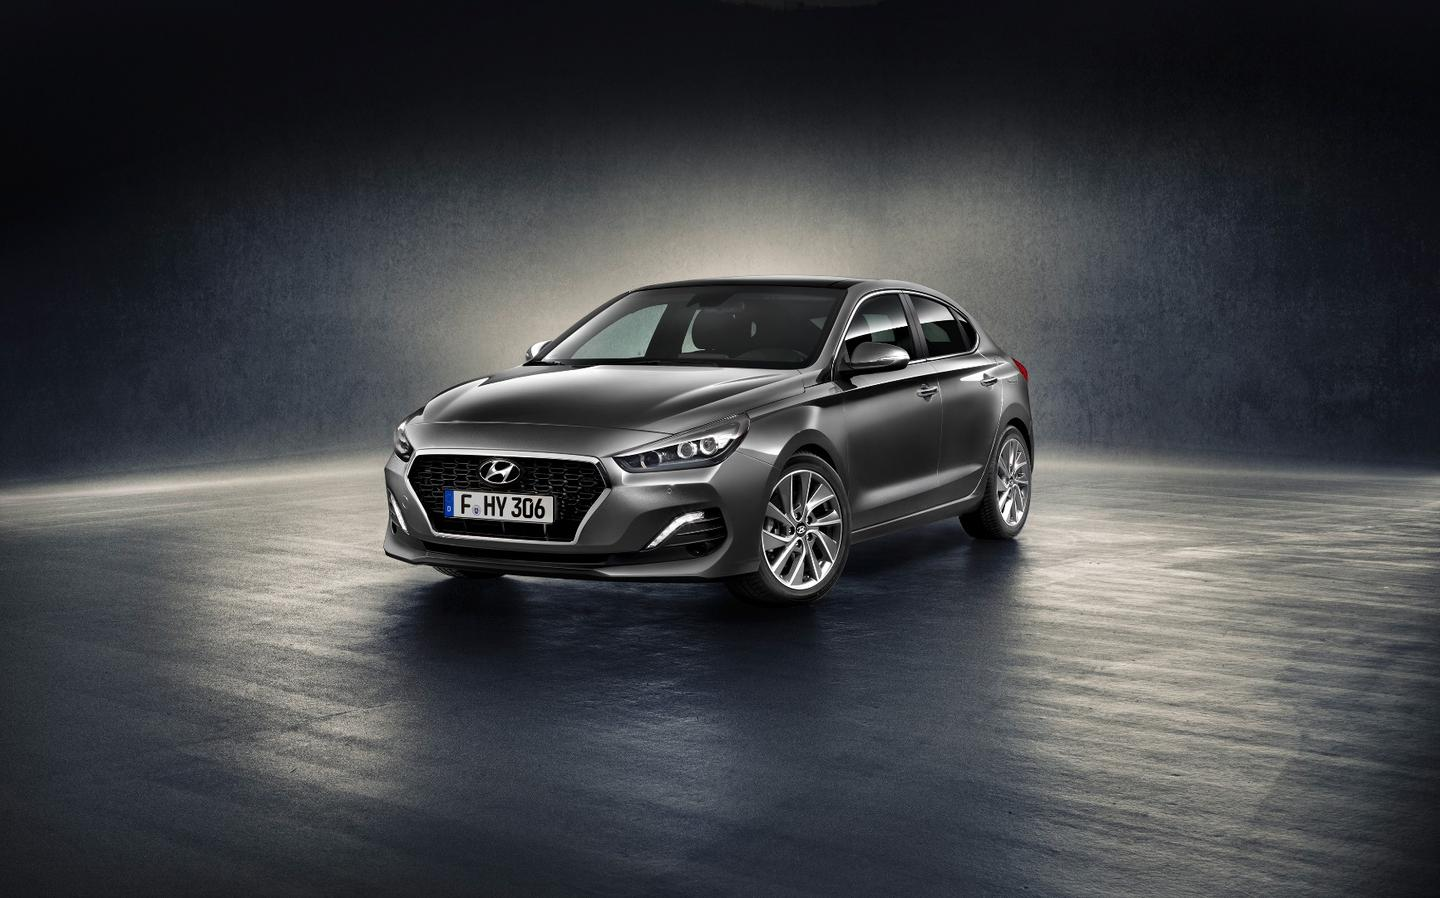 The nose of the Hyundai i30Fastback is slightly more aggressive than the hatchback